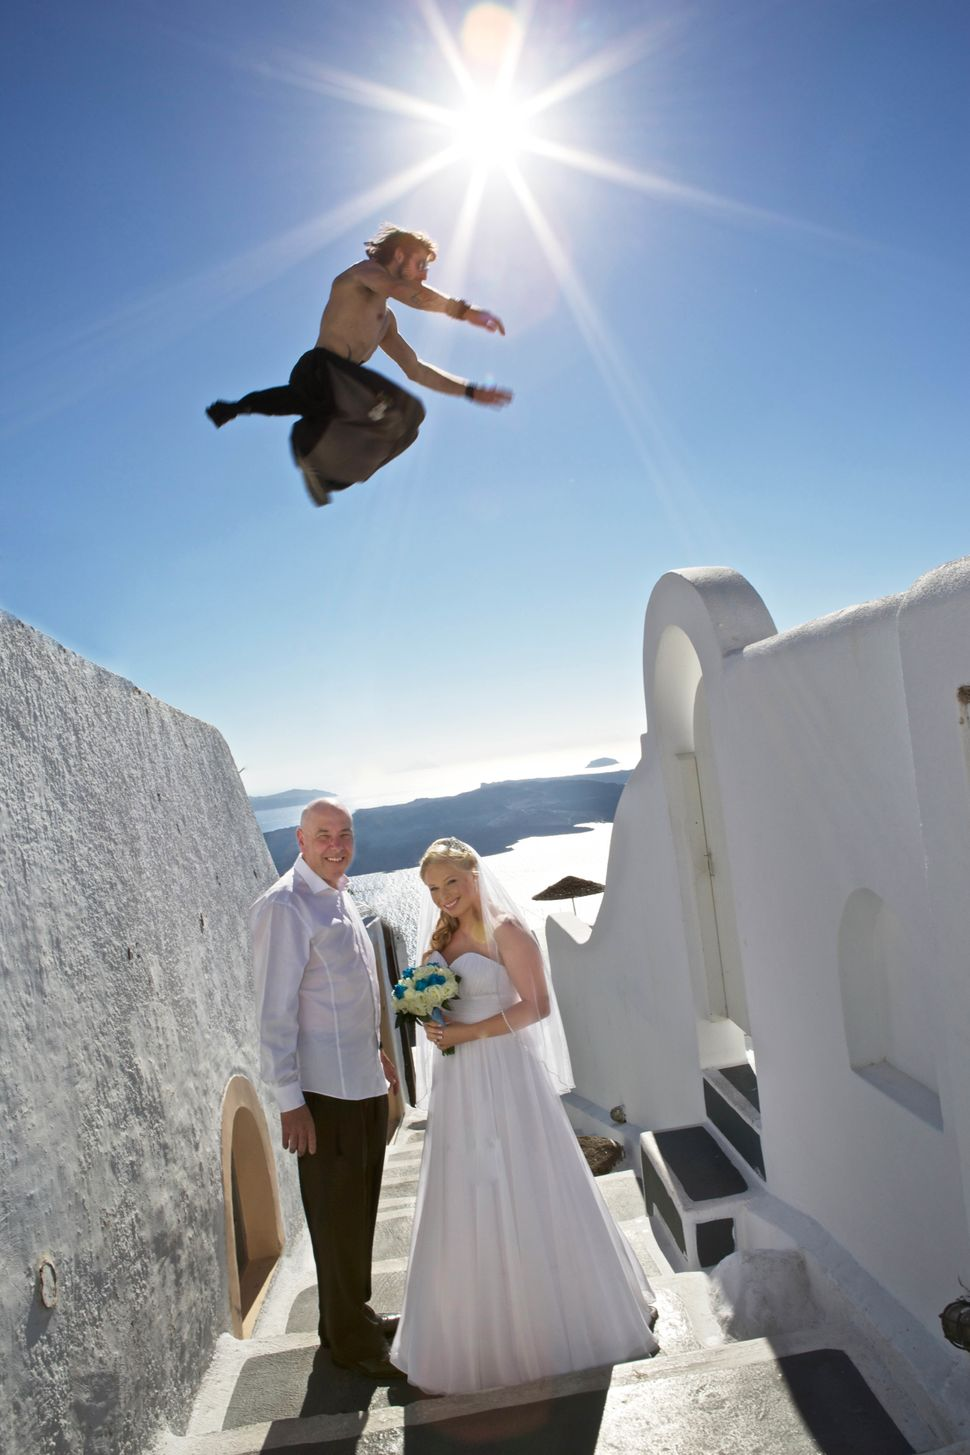 "<strong>Cowabunga, dude! </strong><br><br> Get the backstory <a href=""http://www.huffingtonpost.com/2014/10/07/parkour-weddin"